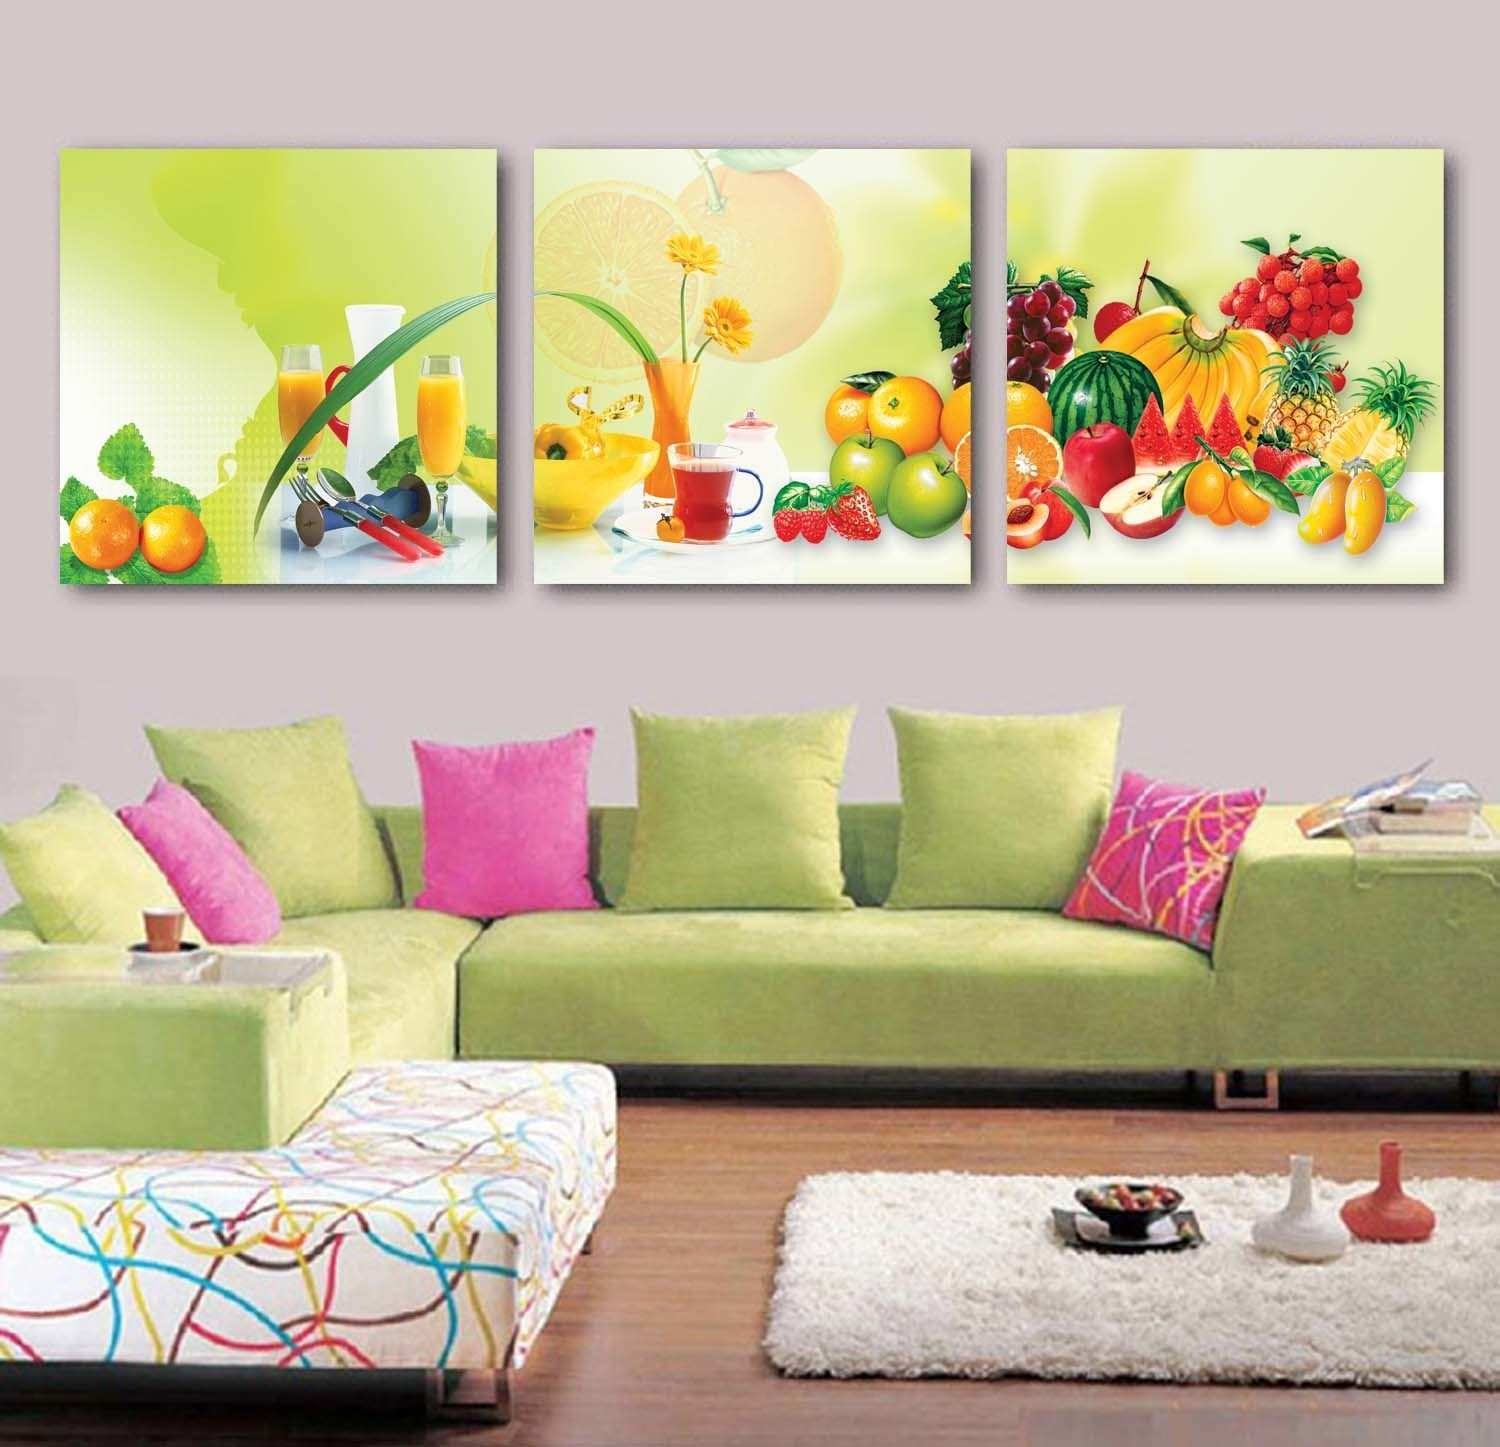 Exelent 3 Panel Wall Decor Pattern Wall Art Collections